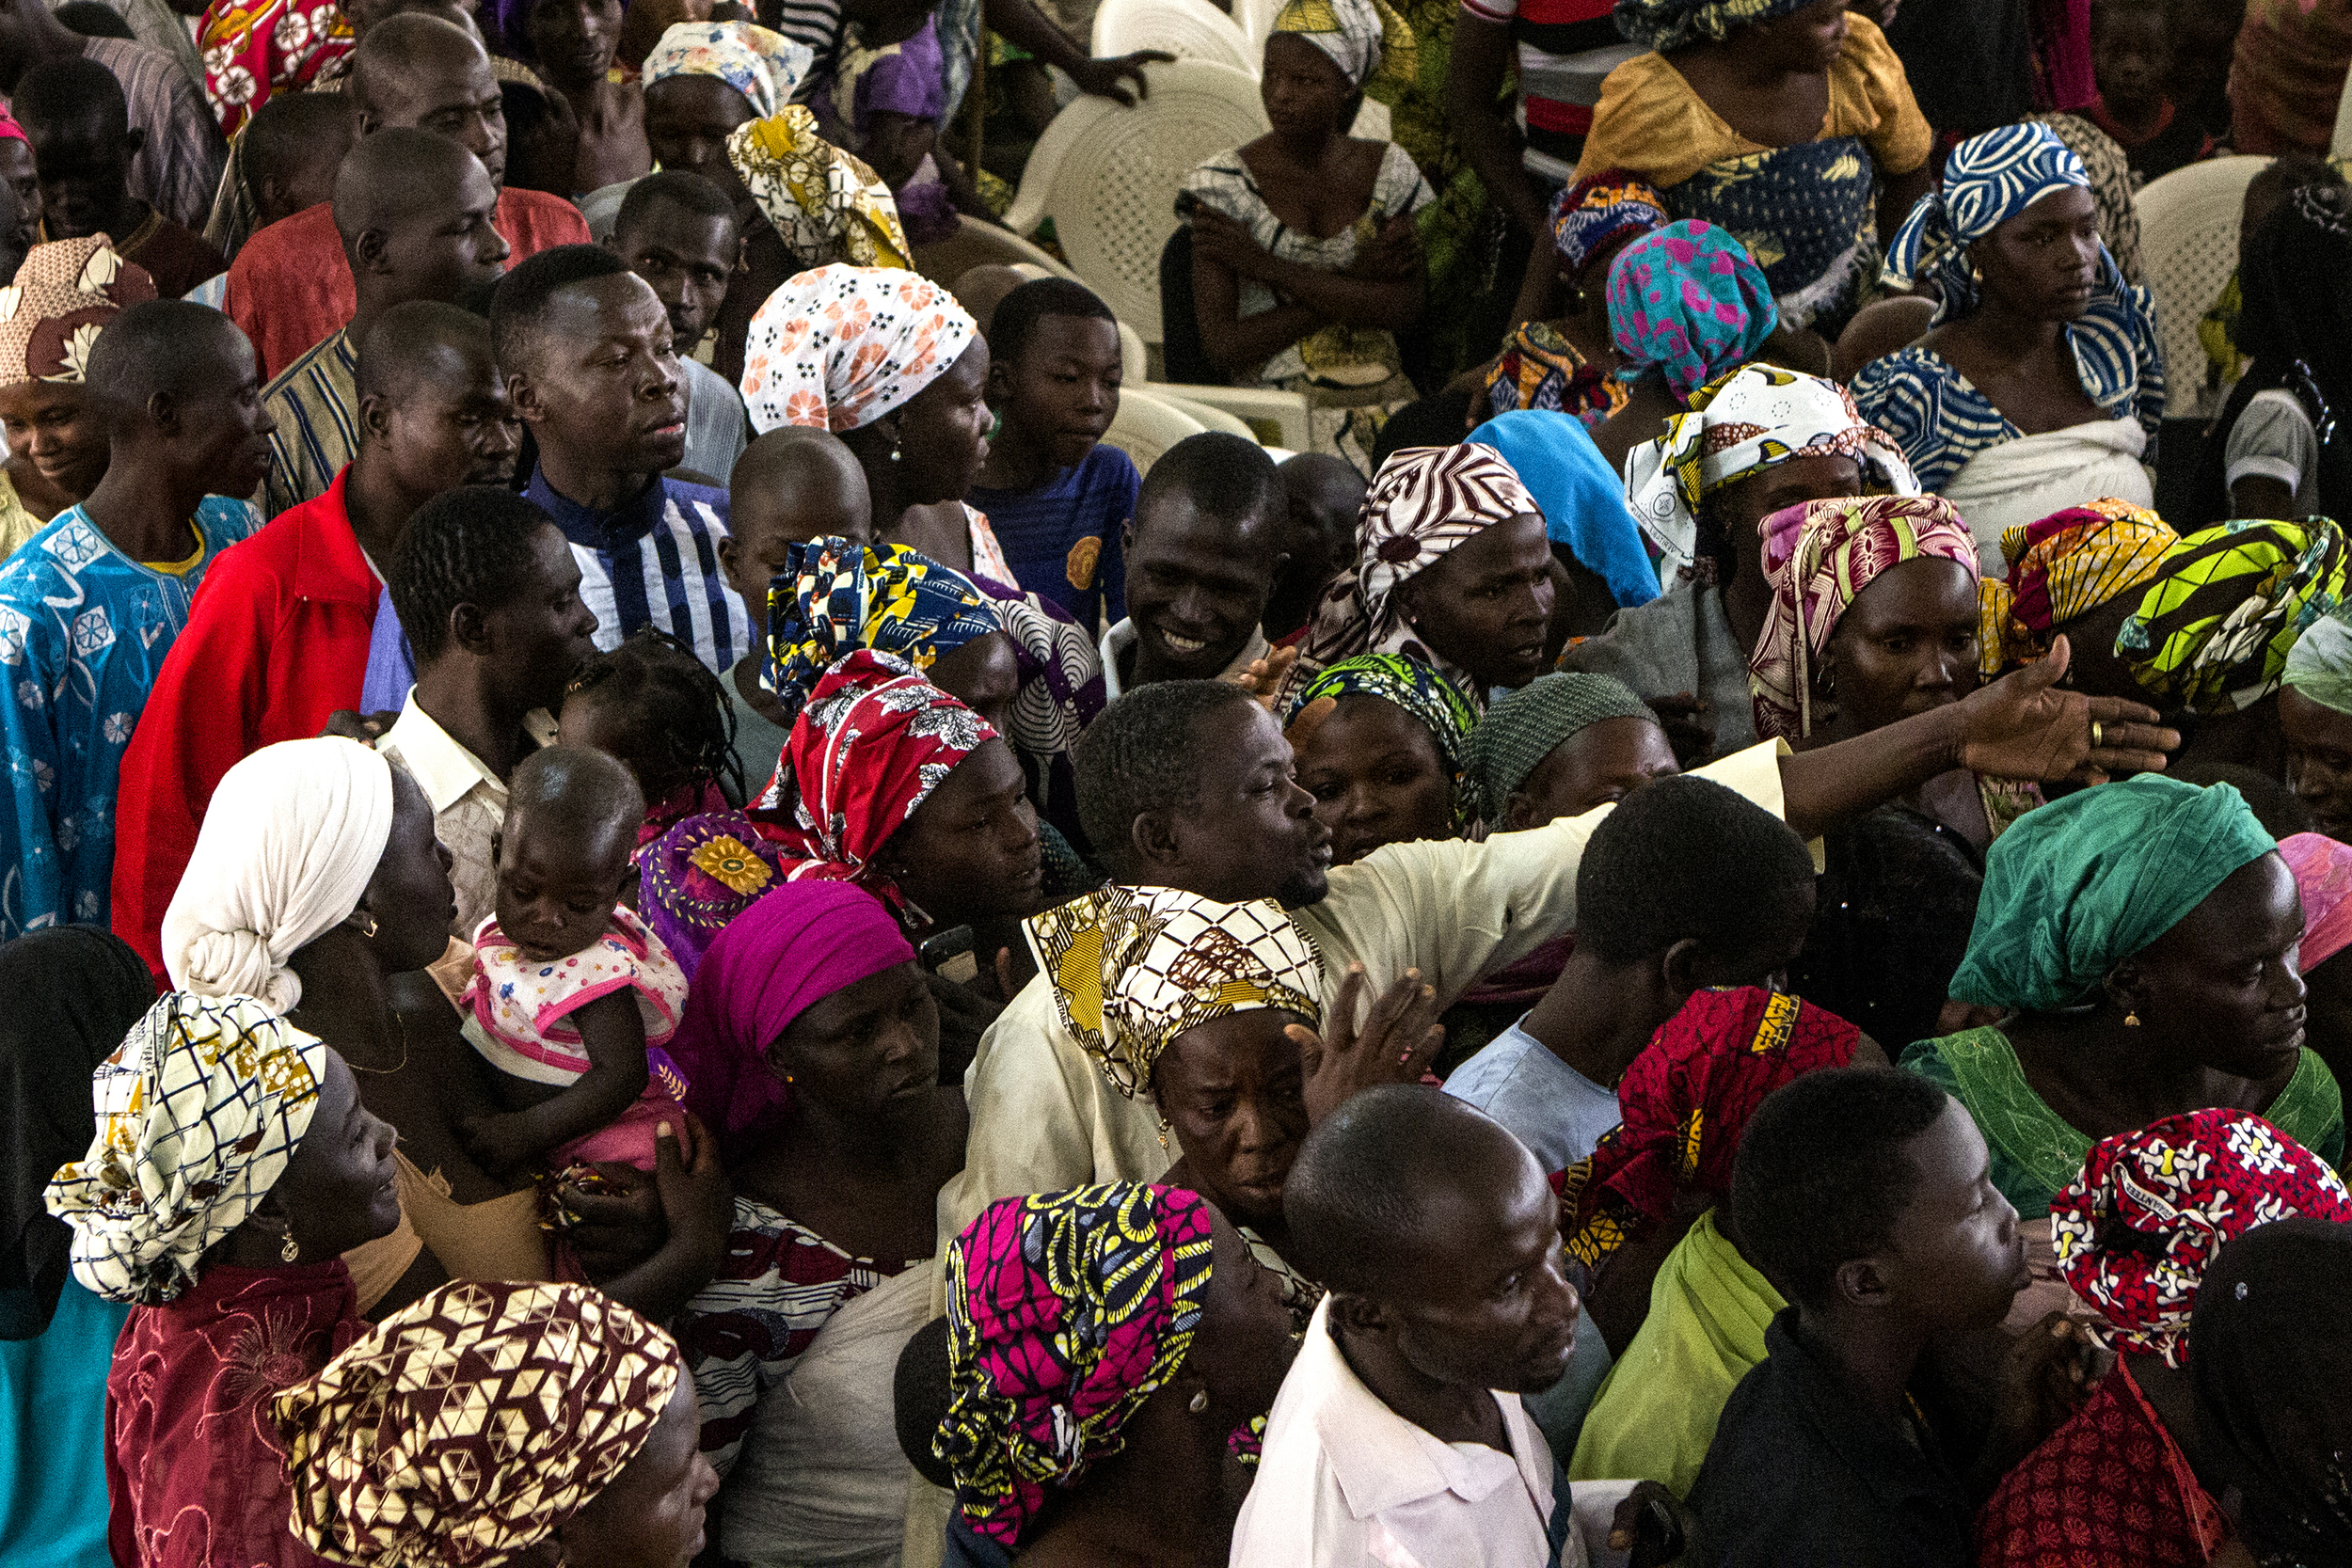 A man tries to organize a group if internally displaced persons waiting for a food at a church in Yola, Nigeria, March 1, 2015.